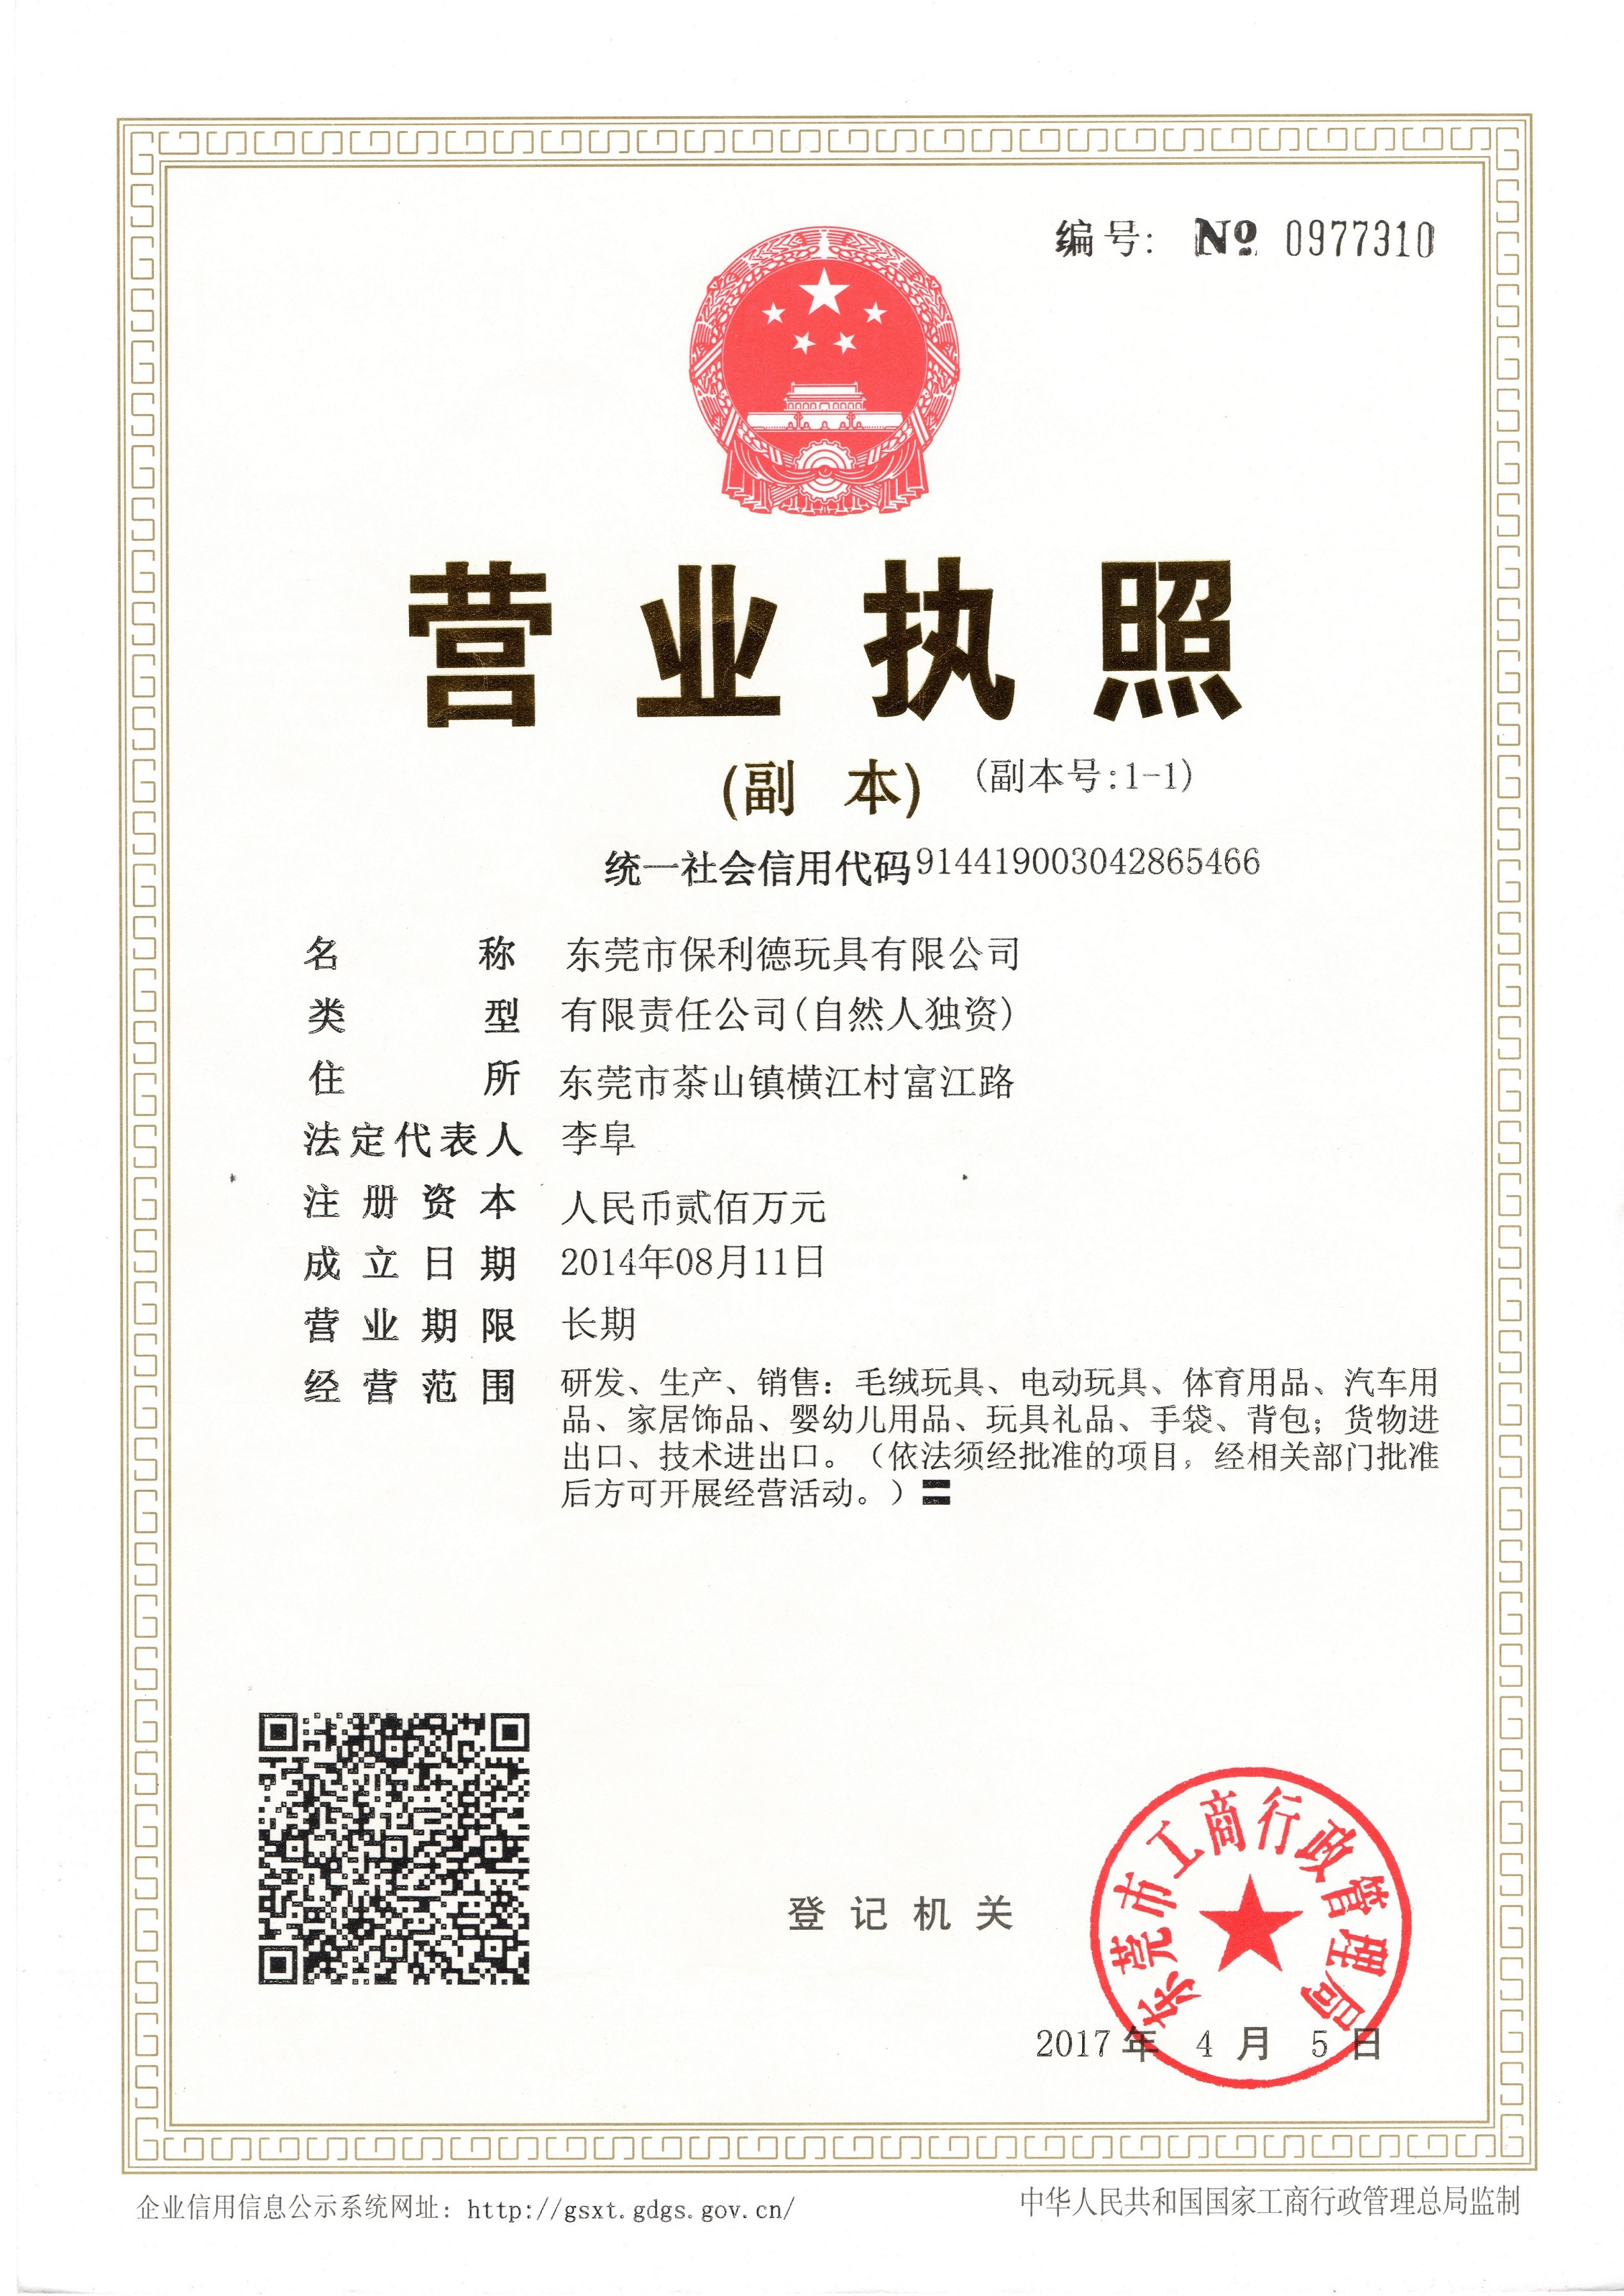 Business License of Paolide Toy